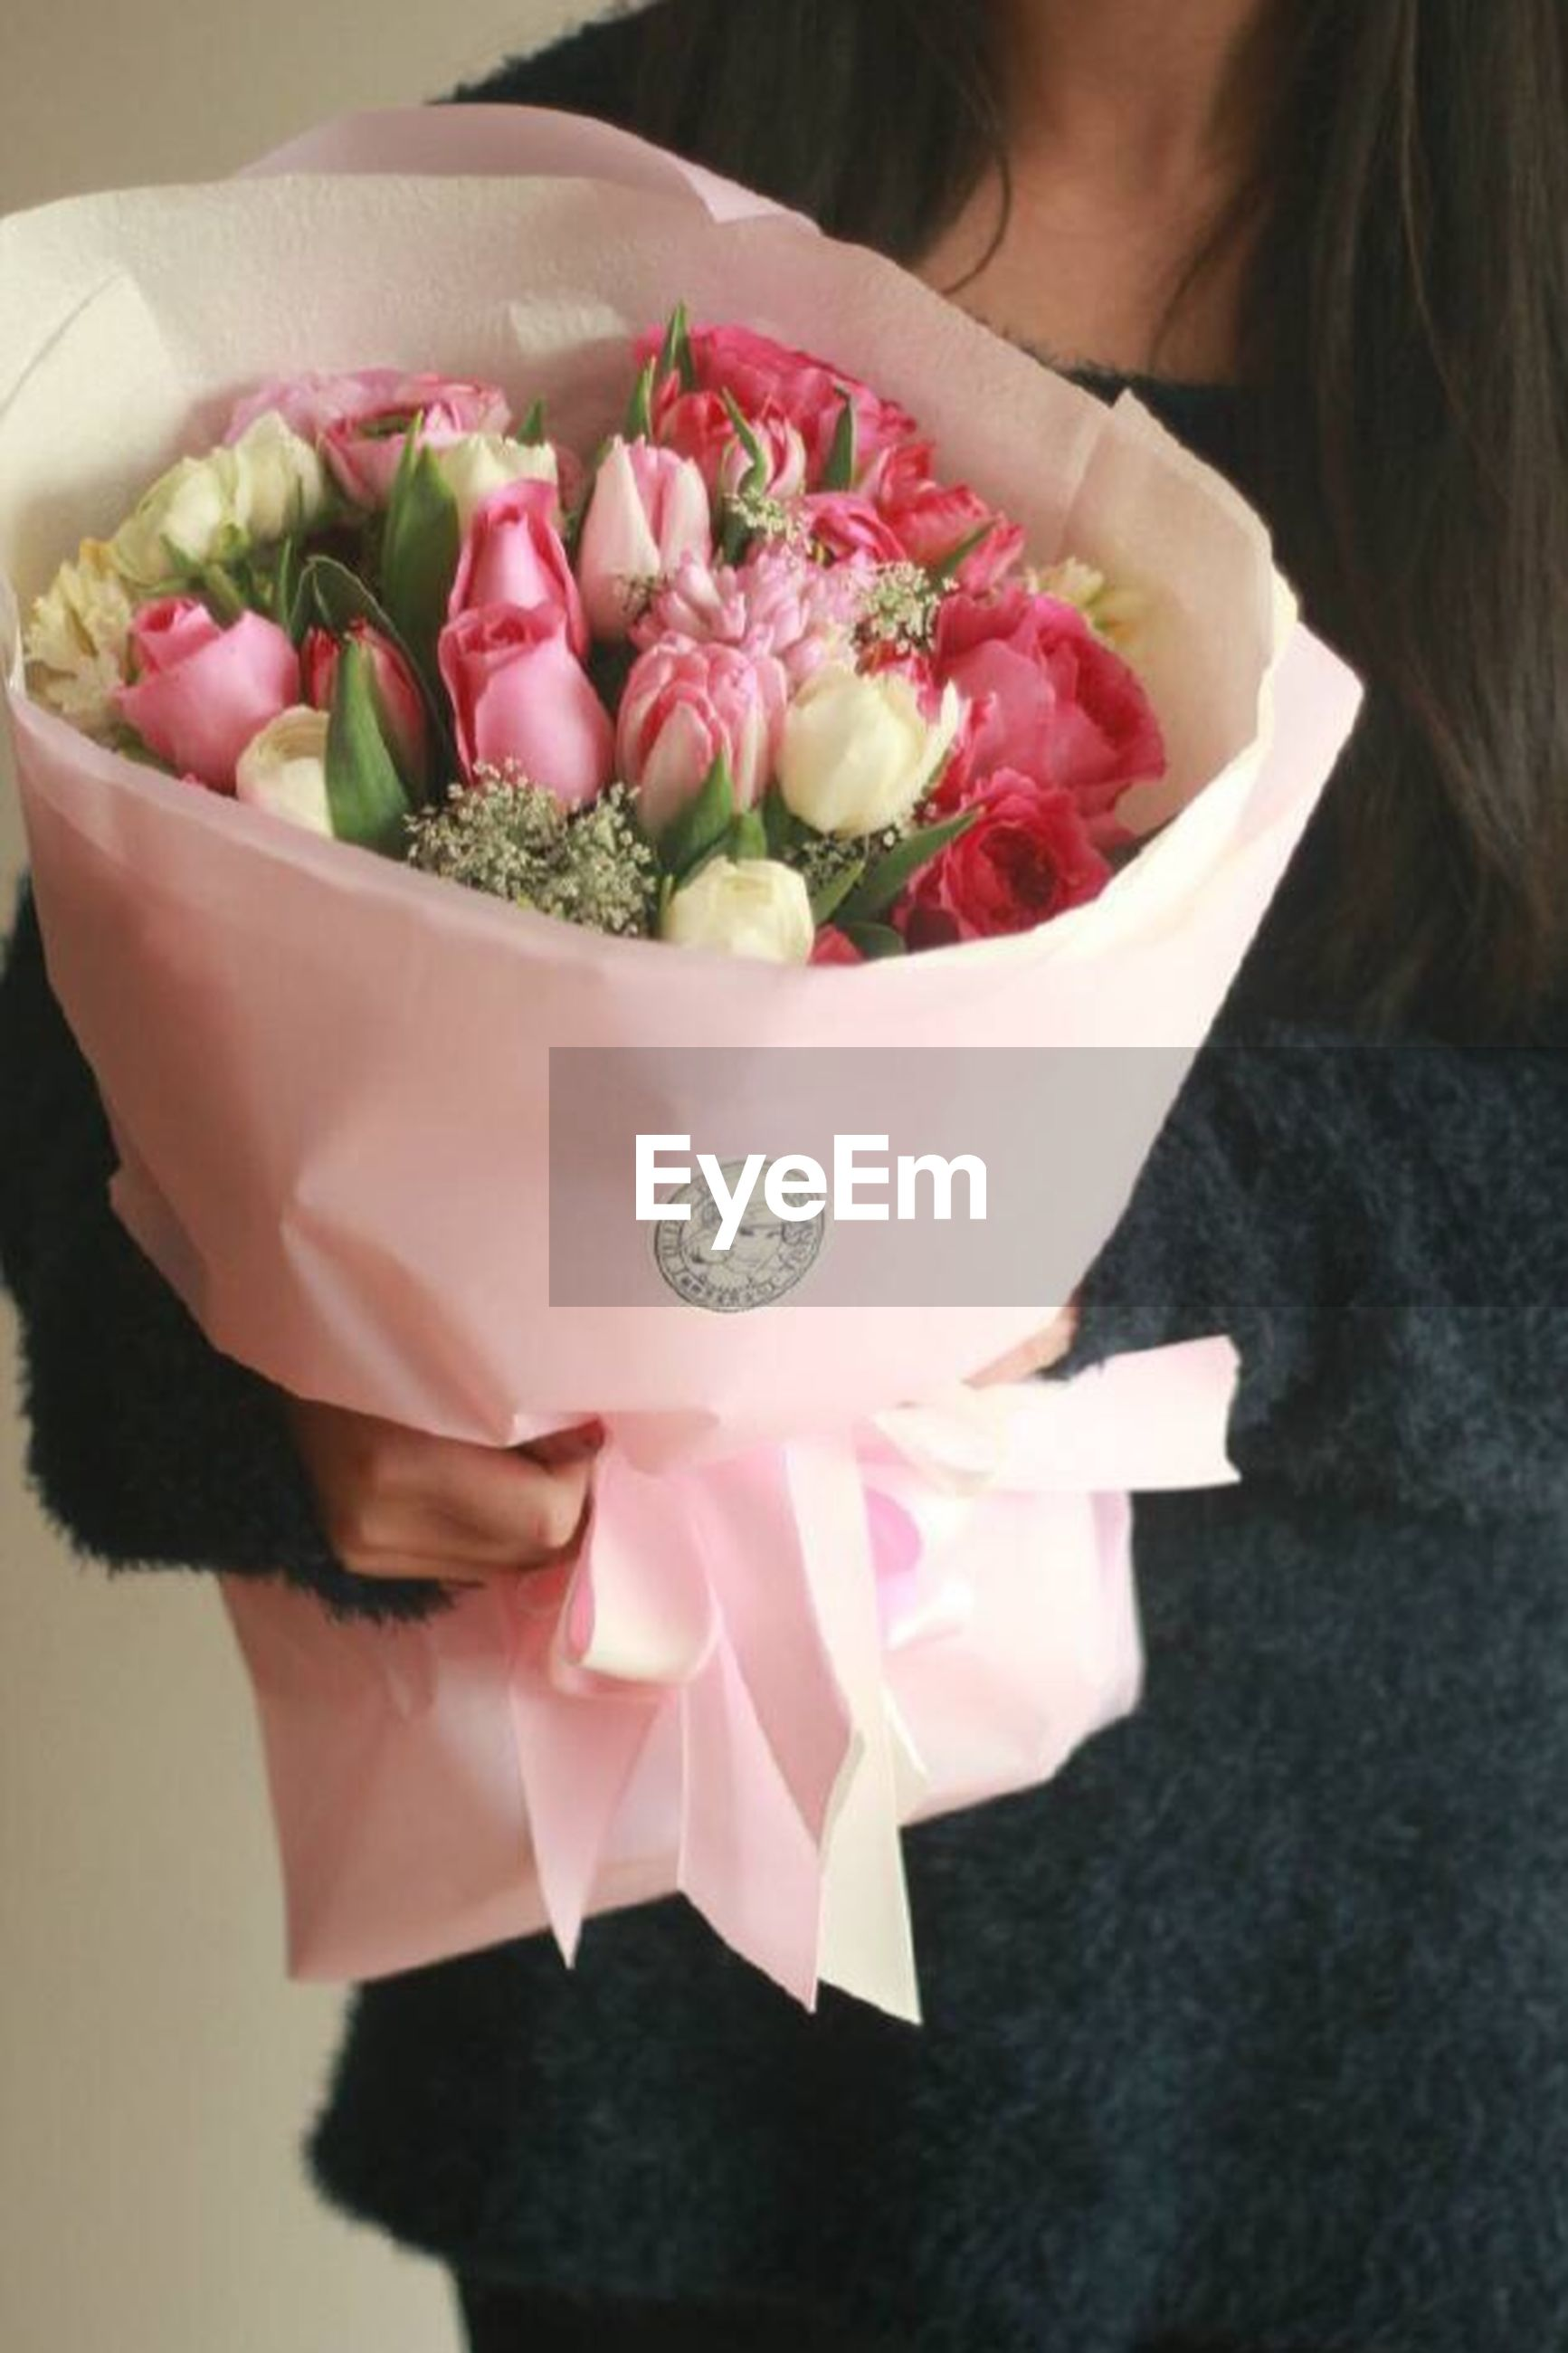 indoors, flower, freshness, holding, person, lifestyles, leisure activity, table, bouquet, food and drink, high angle view, pink color, close-up, decoration, wedding, celebration